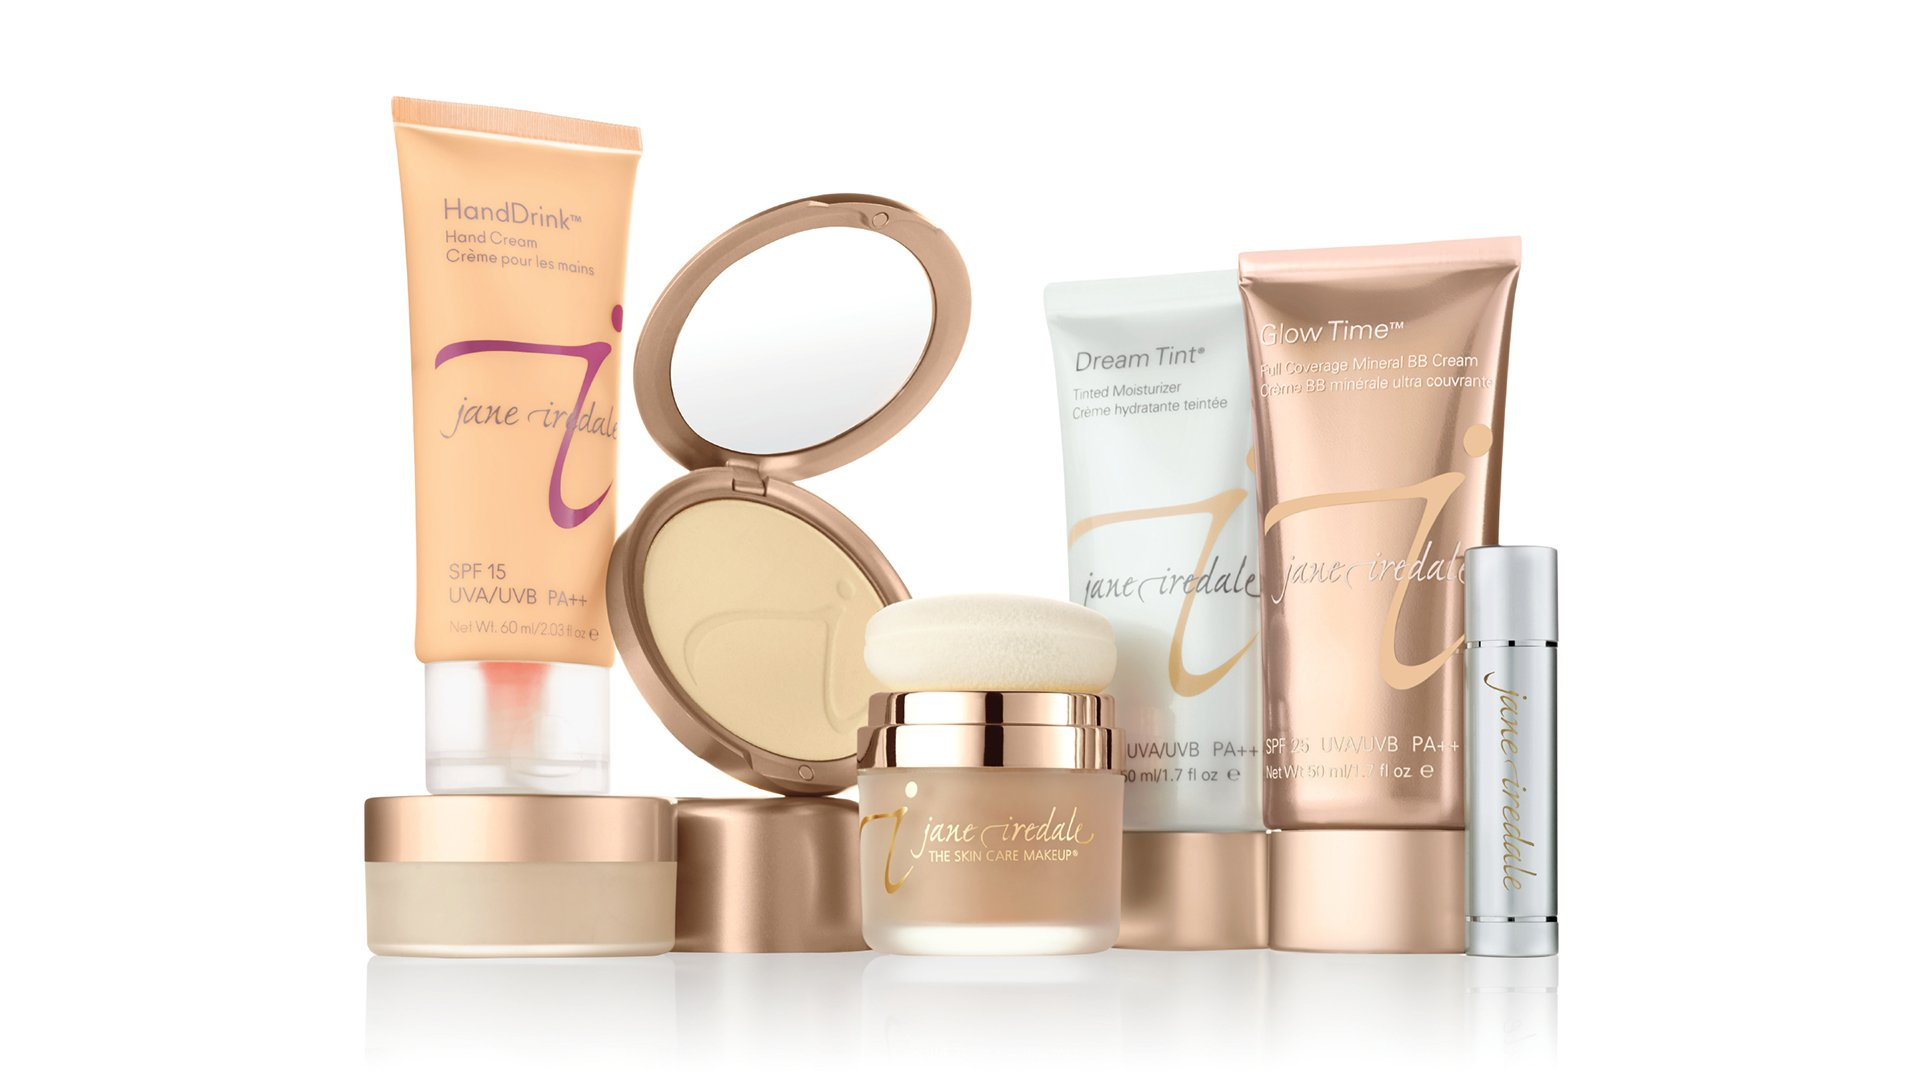 jane iredale foundation hand drink dream tint glow time